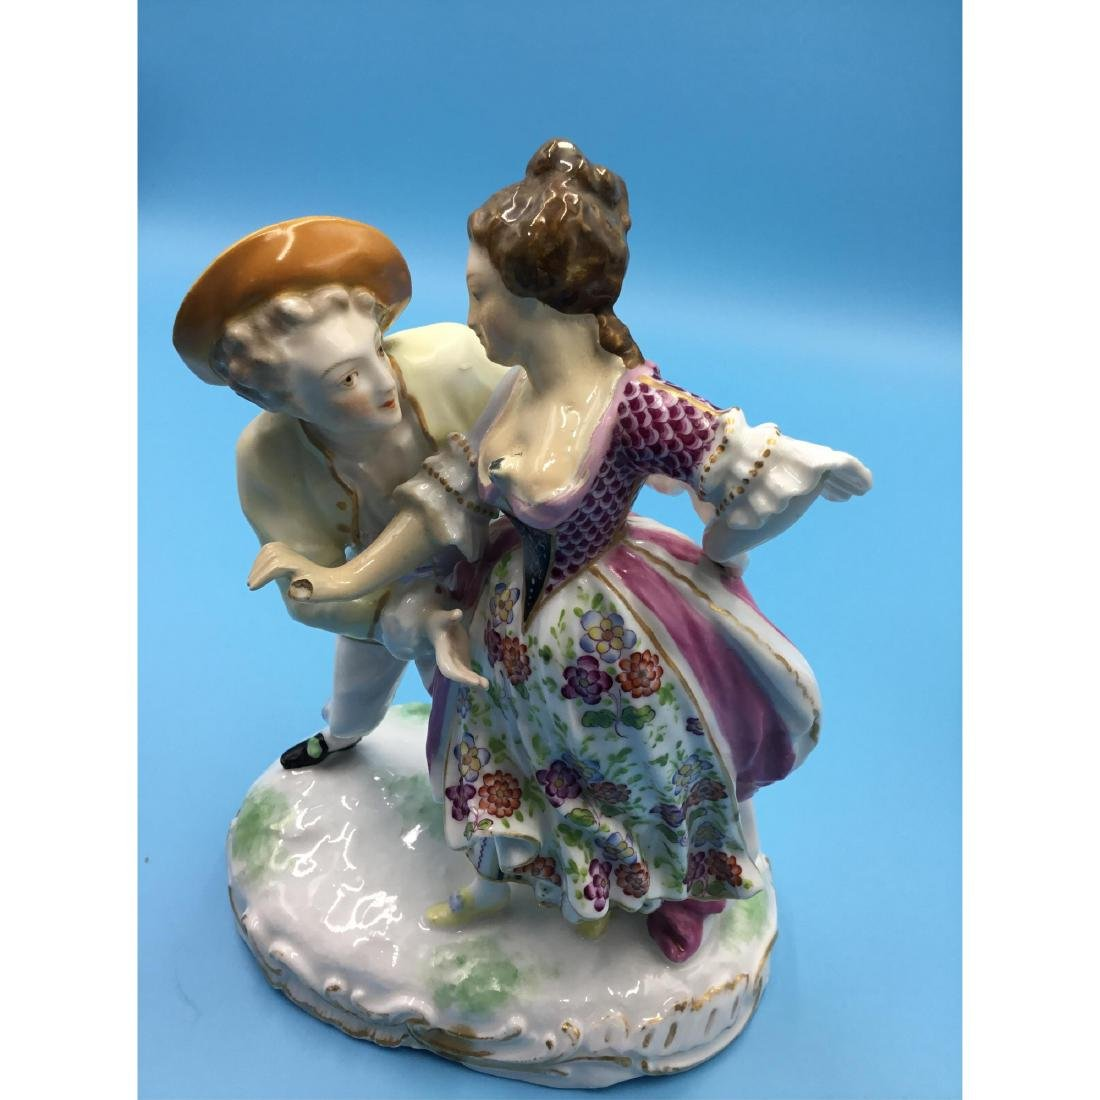 GROUP OF 3 SAMSON FRENCH PORCELAIN FIGURINES - 8